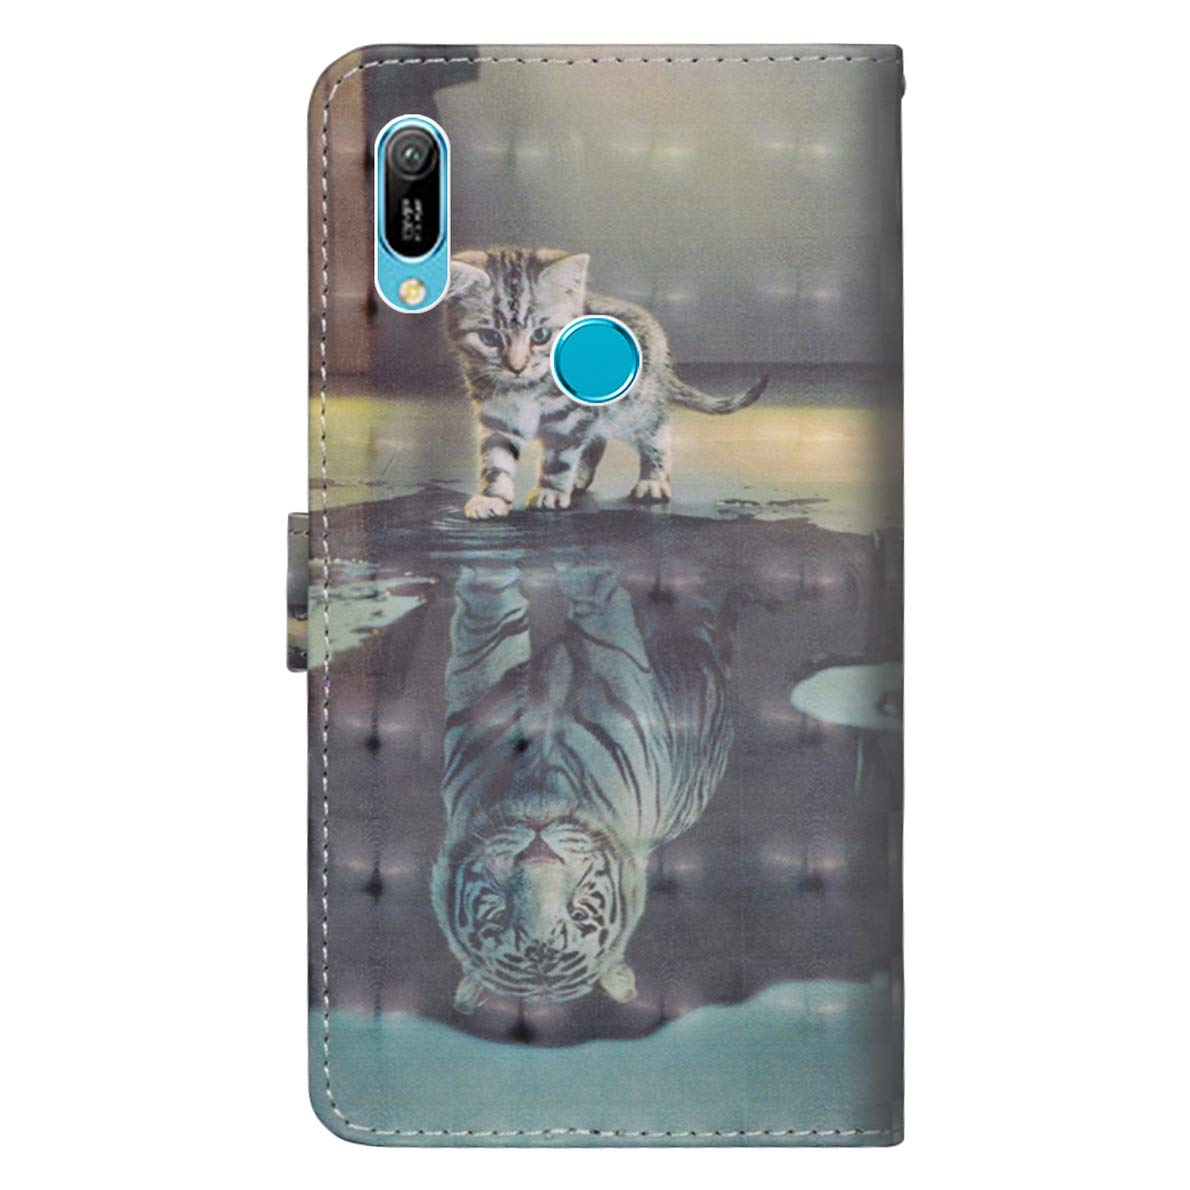 lot coque huawei y6 2019